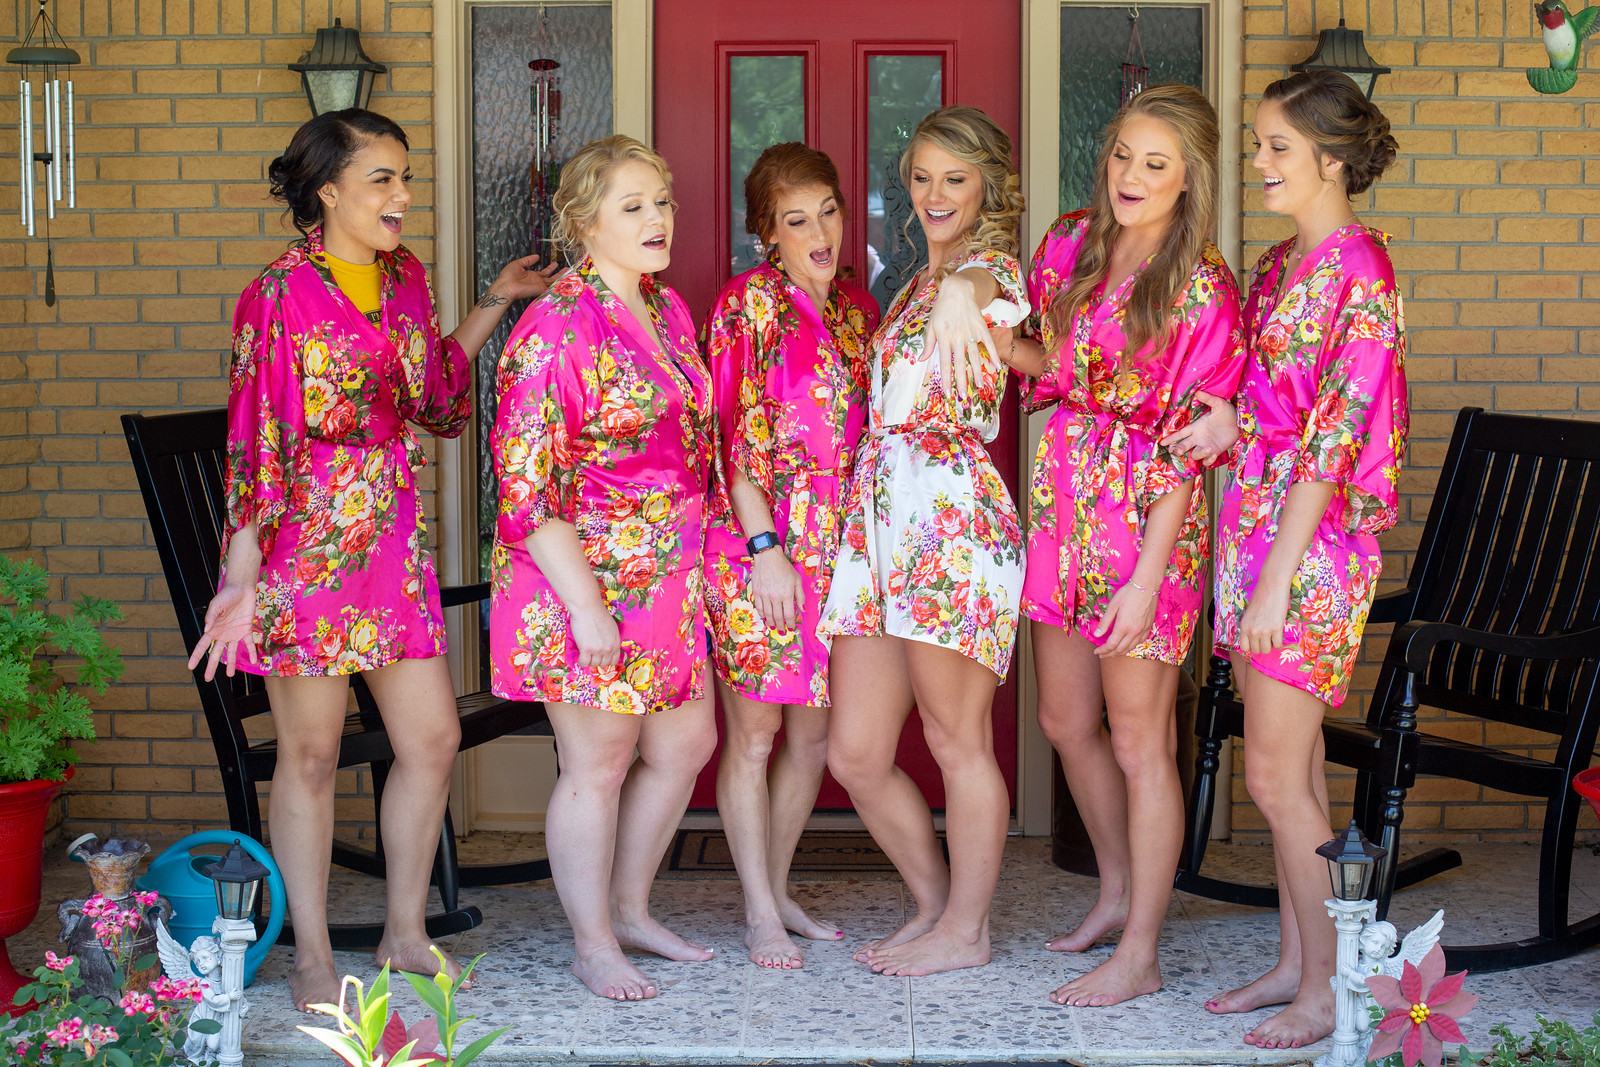 Bridesmaids wearing pink japanese robes as they smile at the bride while she shows off her wedding ring